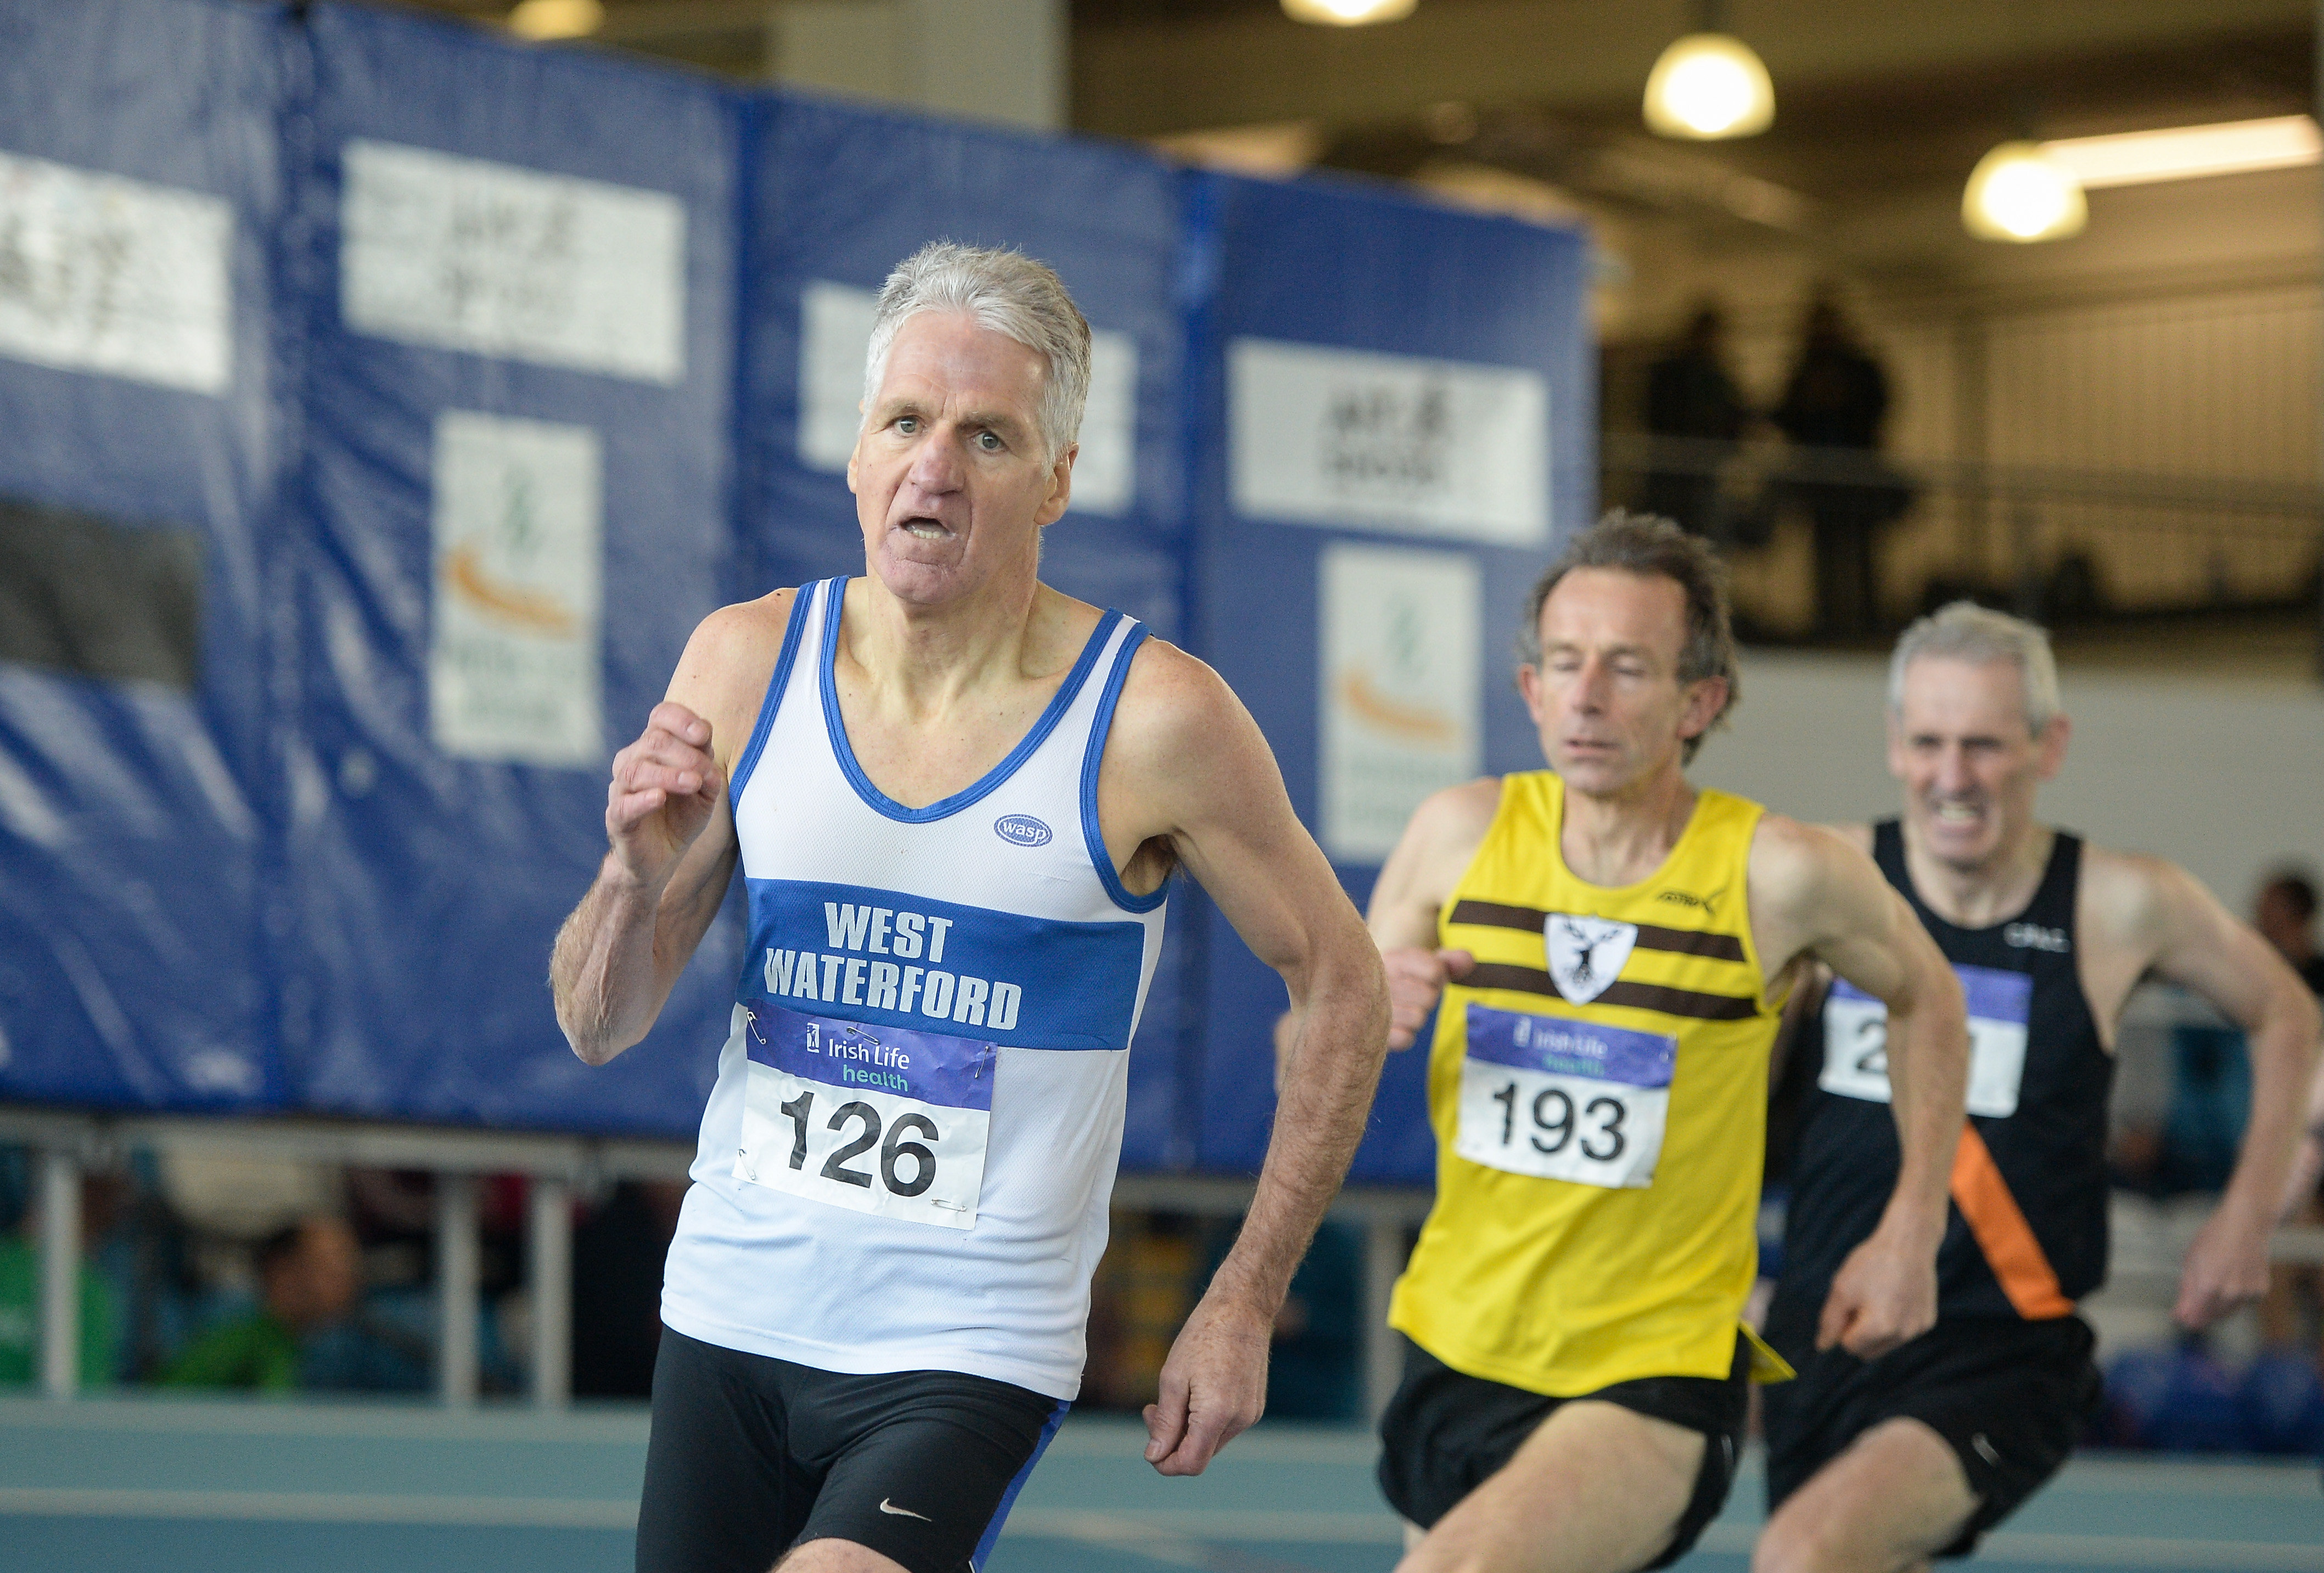 Irish Life Health National Master Indoor Championship Postponed